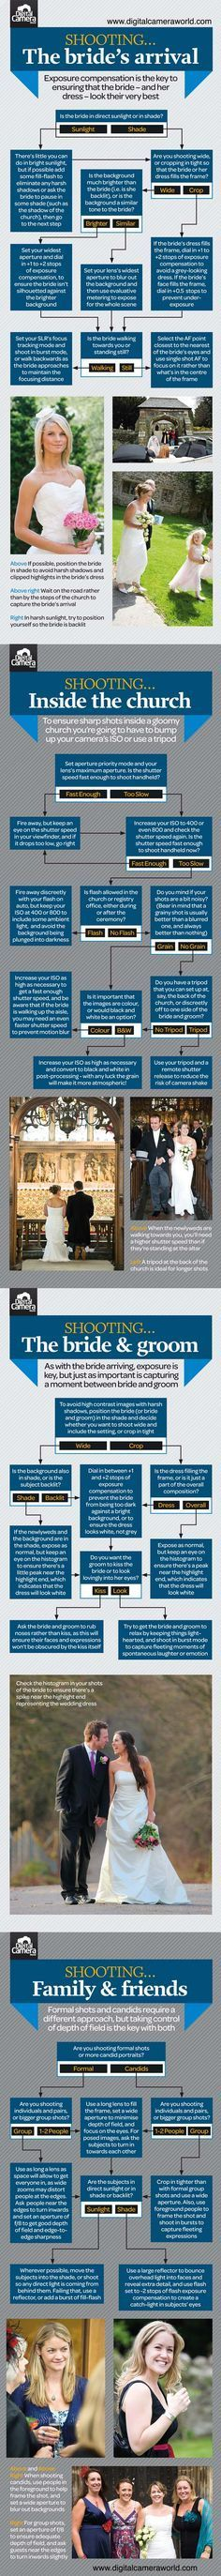 Wedding photography cheat sheet, infographic. Great tips for getting the right shots outdoors, inside the church, etc.